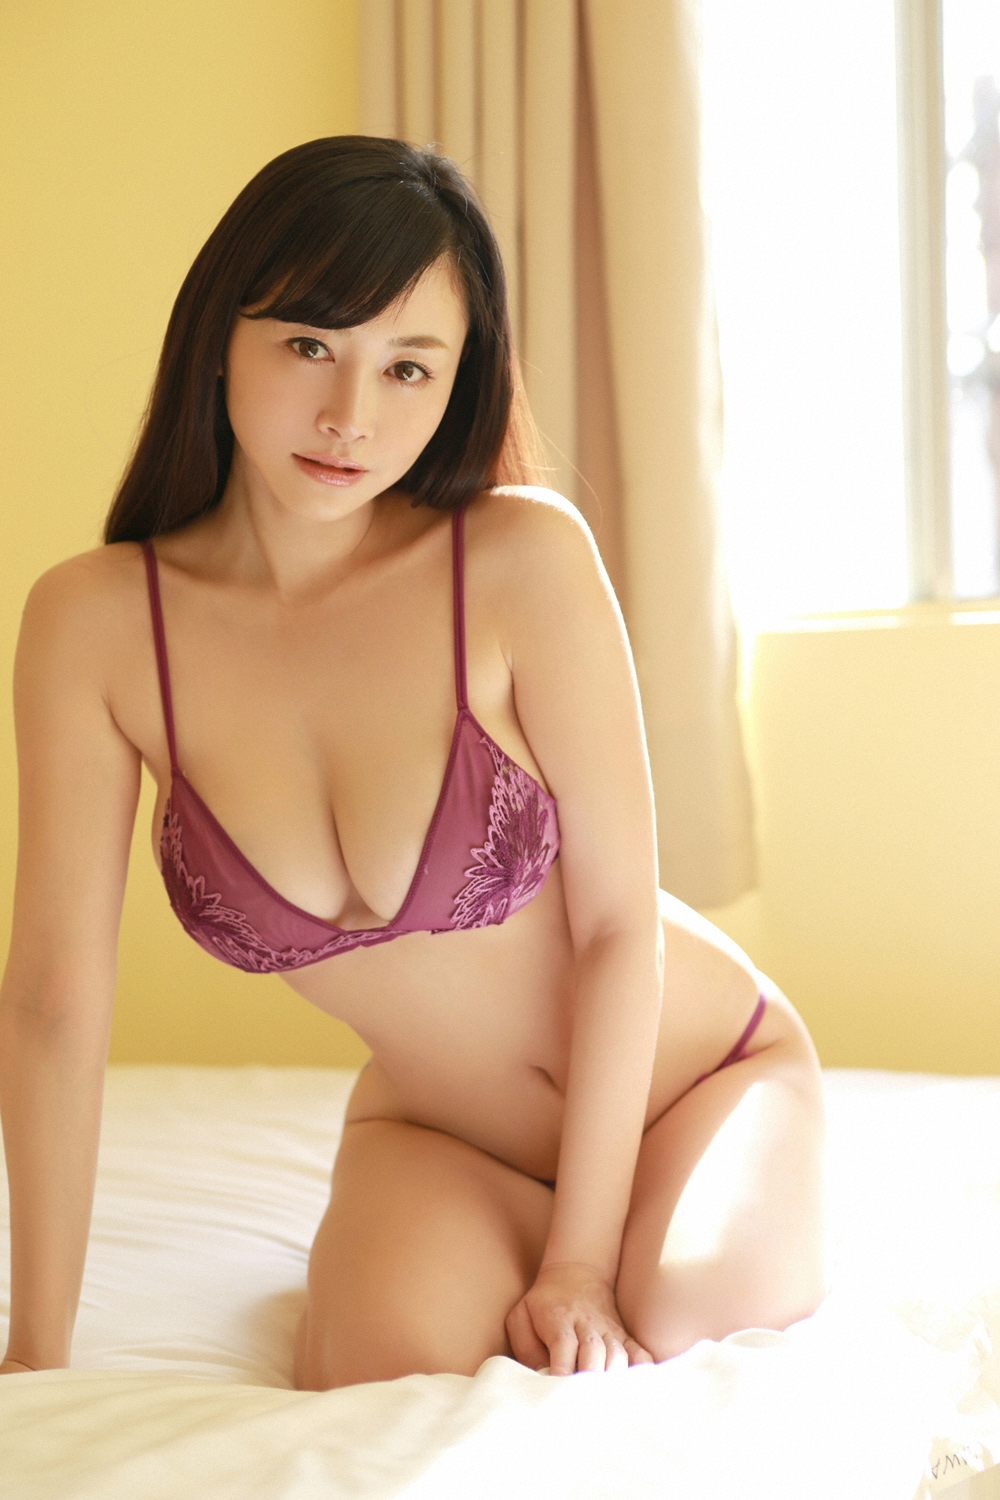 杉原杏璃 Anri Sugihara YS Web Vol 655 Pictures 90